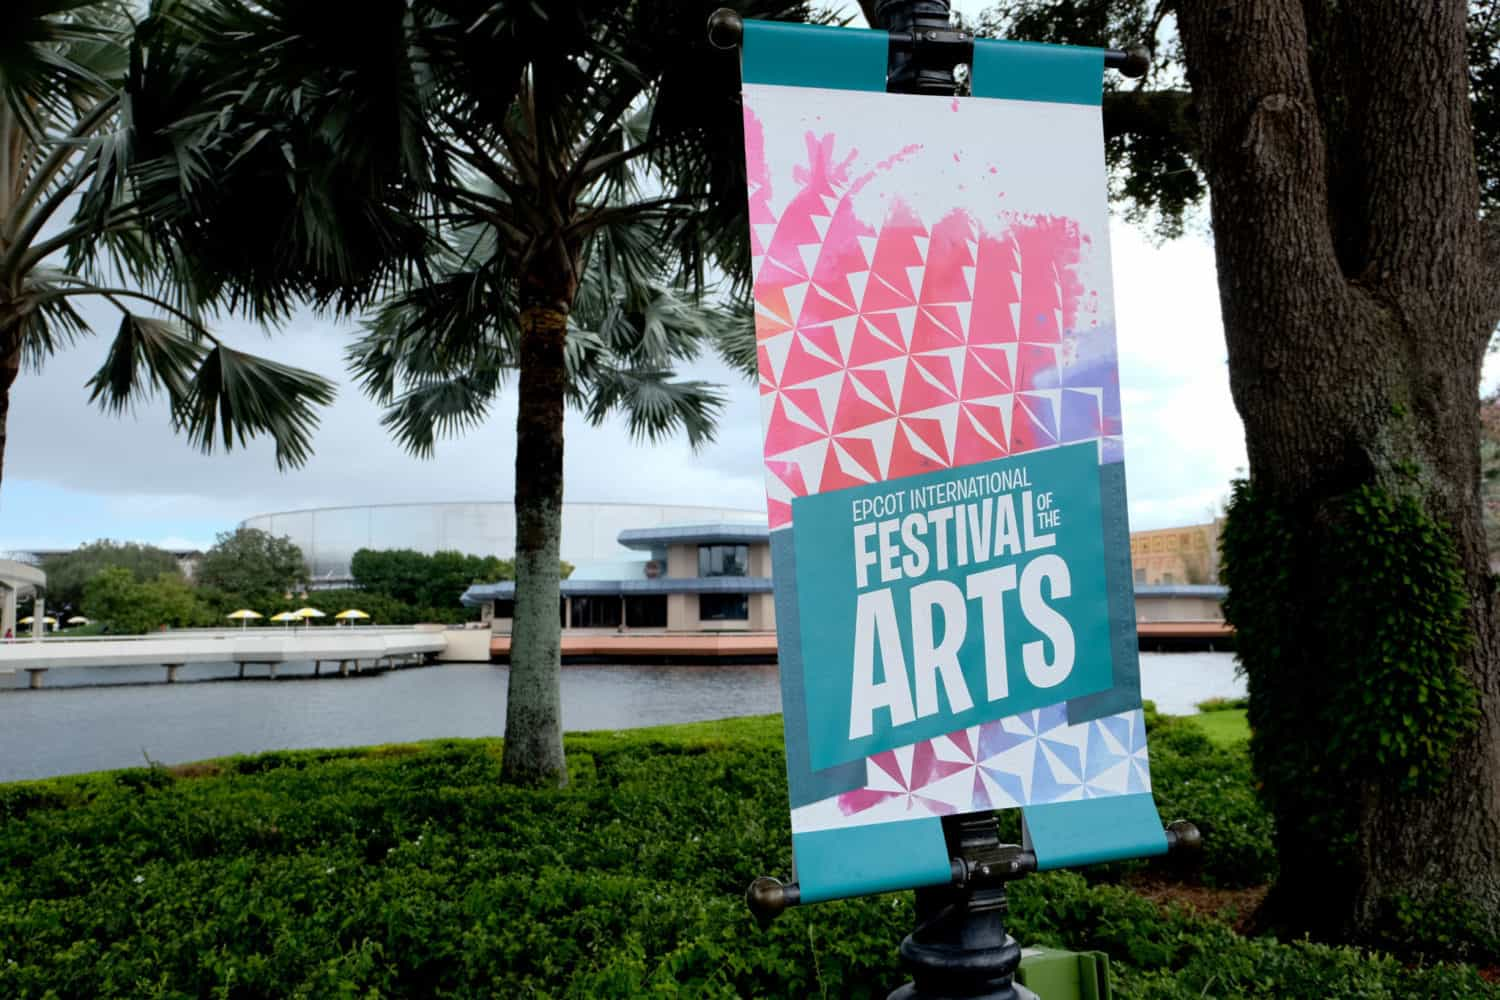 Epcot's International Festival of the Arts: 5 Reasons You Should Visit